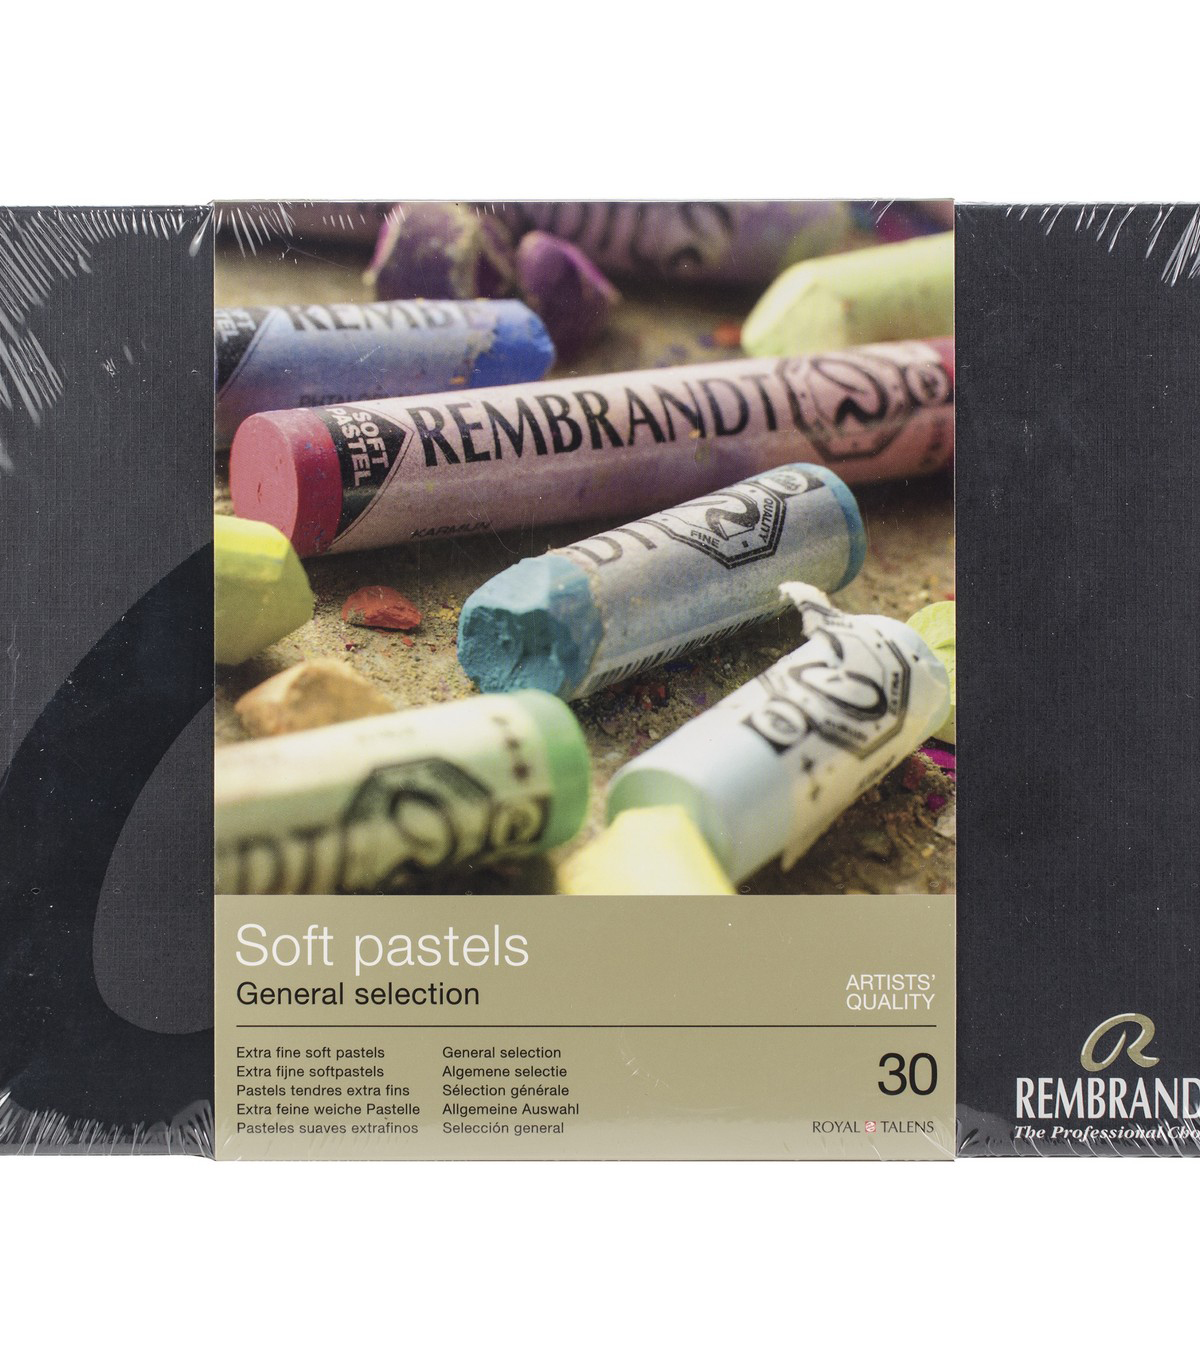 Rembrandt 30 pk Full Stick Extra Fine Soft Pastels-General Selection